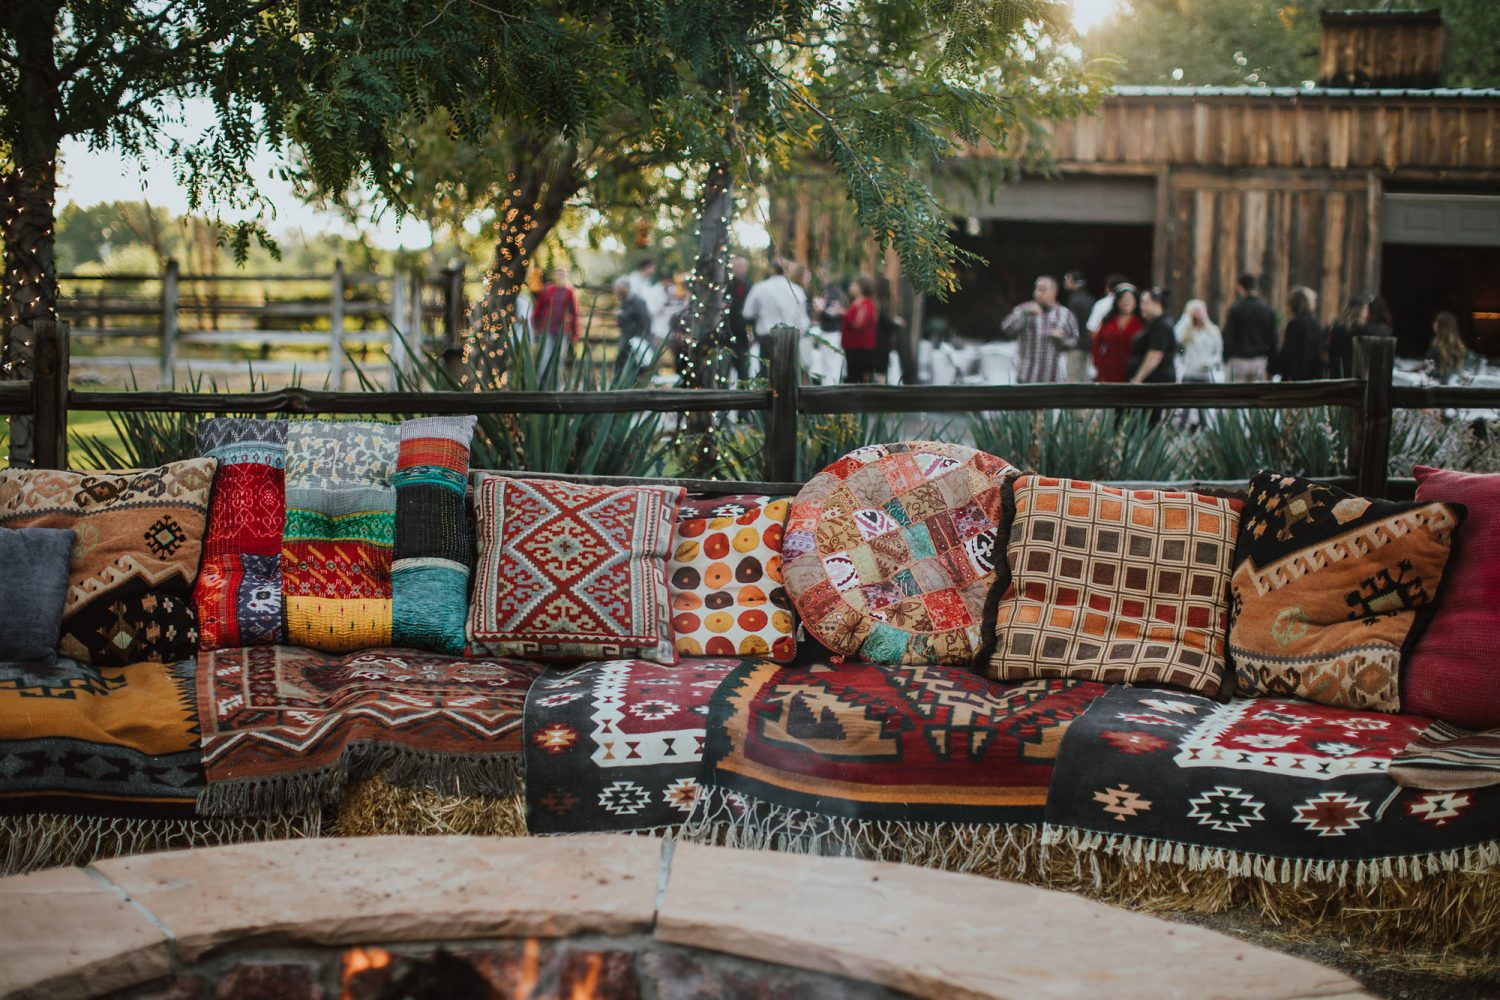 Rustic Glam Wedding at Triple J Ranch in Kirtland, New Mexico